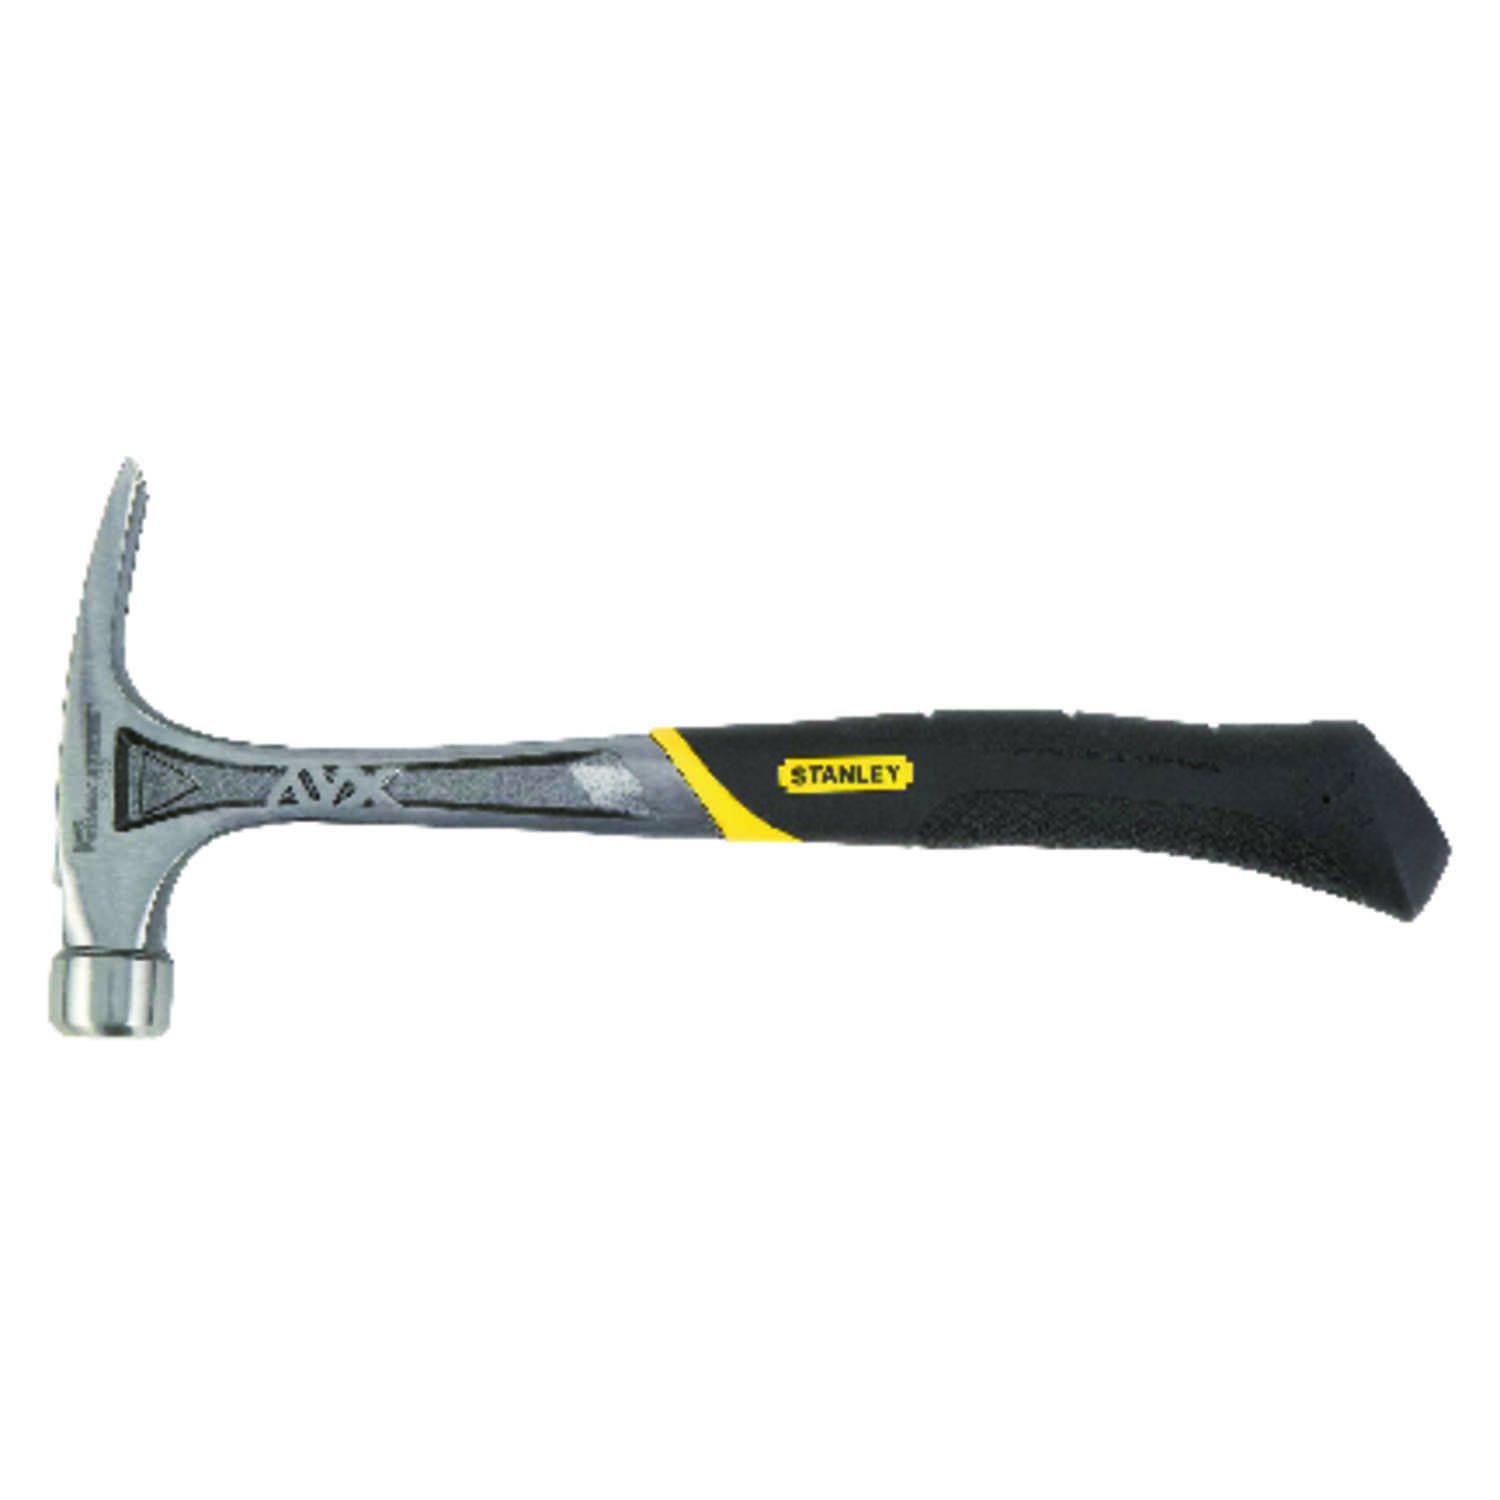 Stanley  FatMax  16 oz. Nailing Hammer  Steel Head Steel Handle  13-1/8 in. L